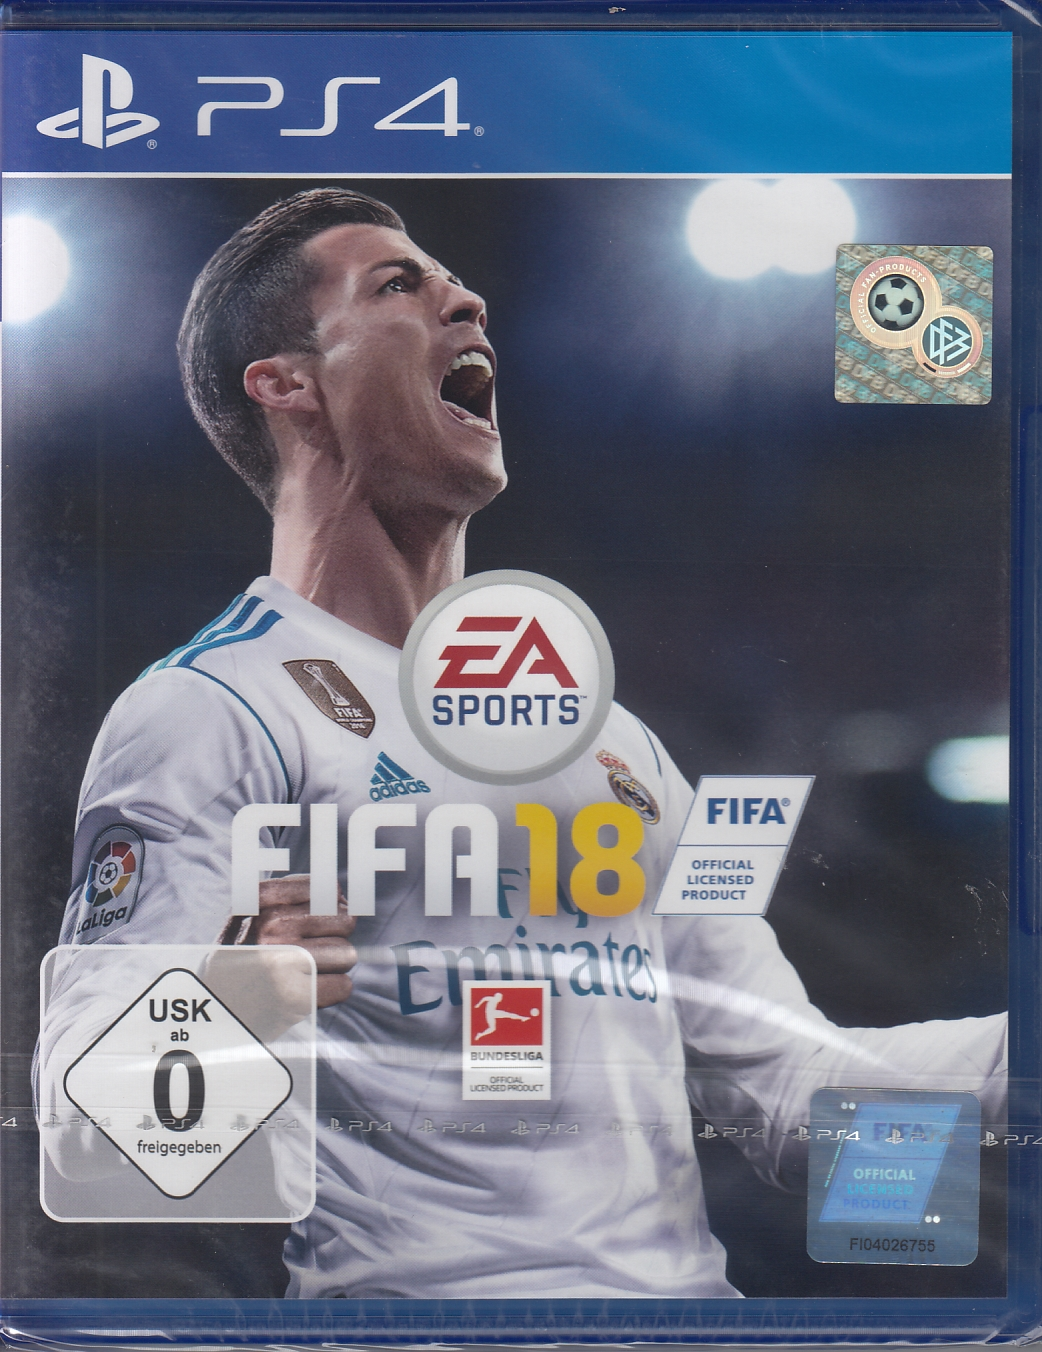 FIFA 18 - PS4 - Sony Playstation 4 - 2018 Neu & OVP Deutsche Version 5030949121523 | eBay